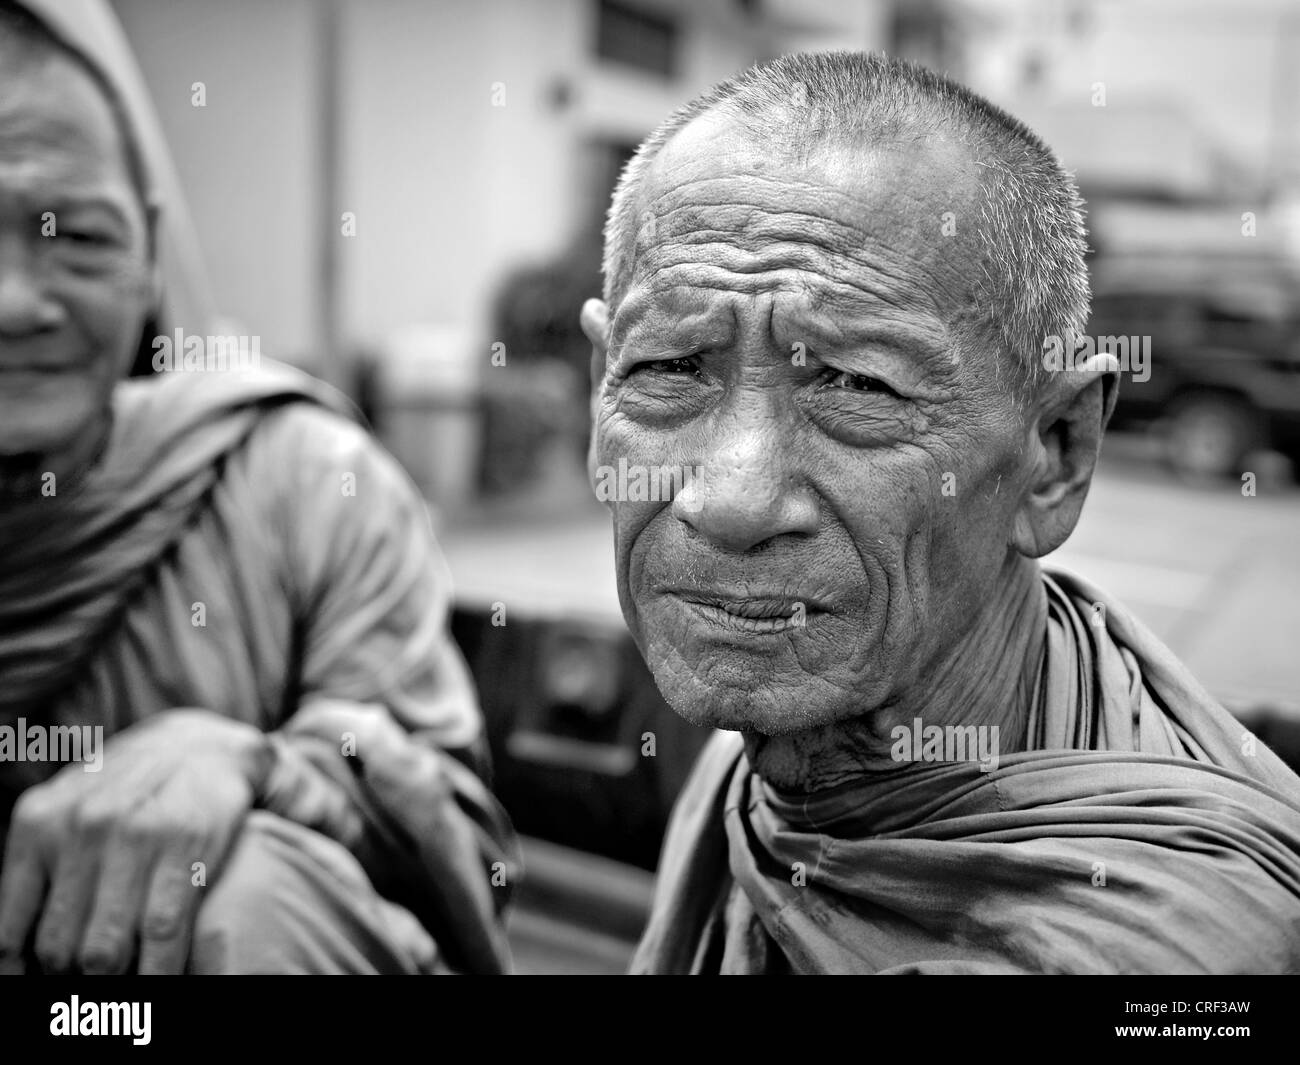 Black and white photography portrait of an elderly Buddhist monk. Thailand S.E. Asia - Stock Image